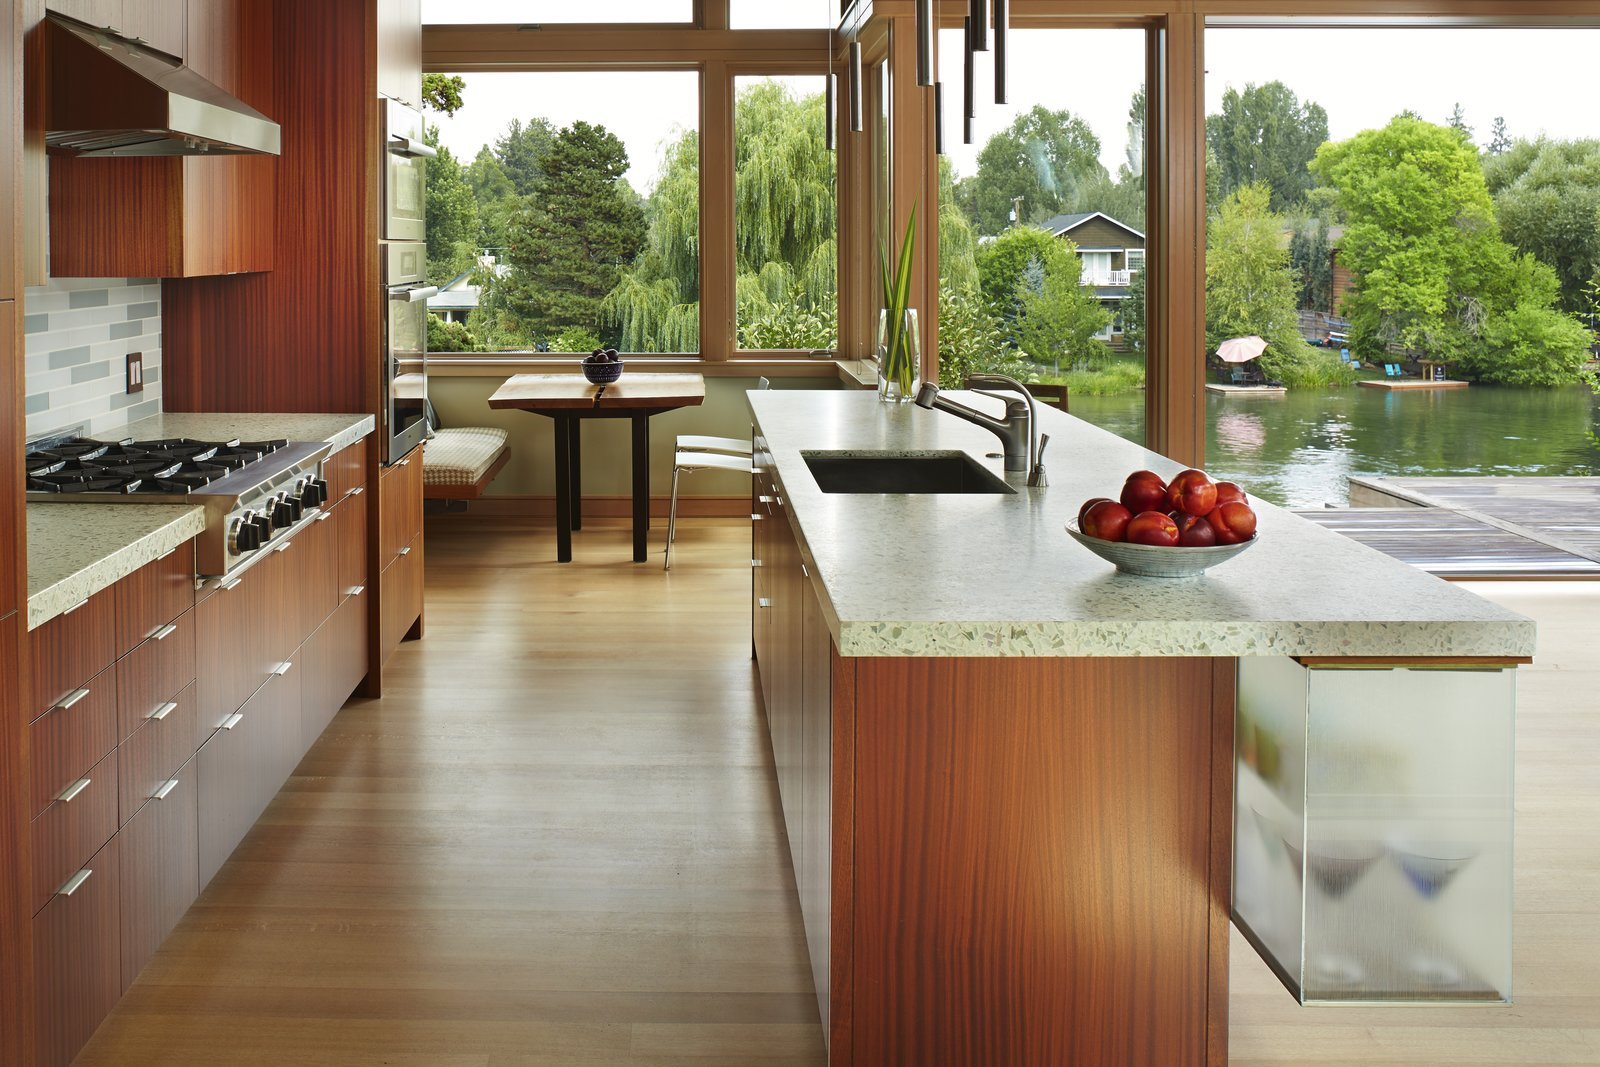 Kitchen, Glass Tile Backsplashe, Refrigerator, Wall Oven, Cooktops, Undermount Sink, Ceiling Lighting, Light Hardwood Floor, Wood Cabinet, and Engineered Quartz Counter View of kitchen and breakfast alcove  DESCHUTES House by FINNE Architects